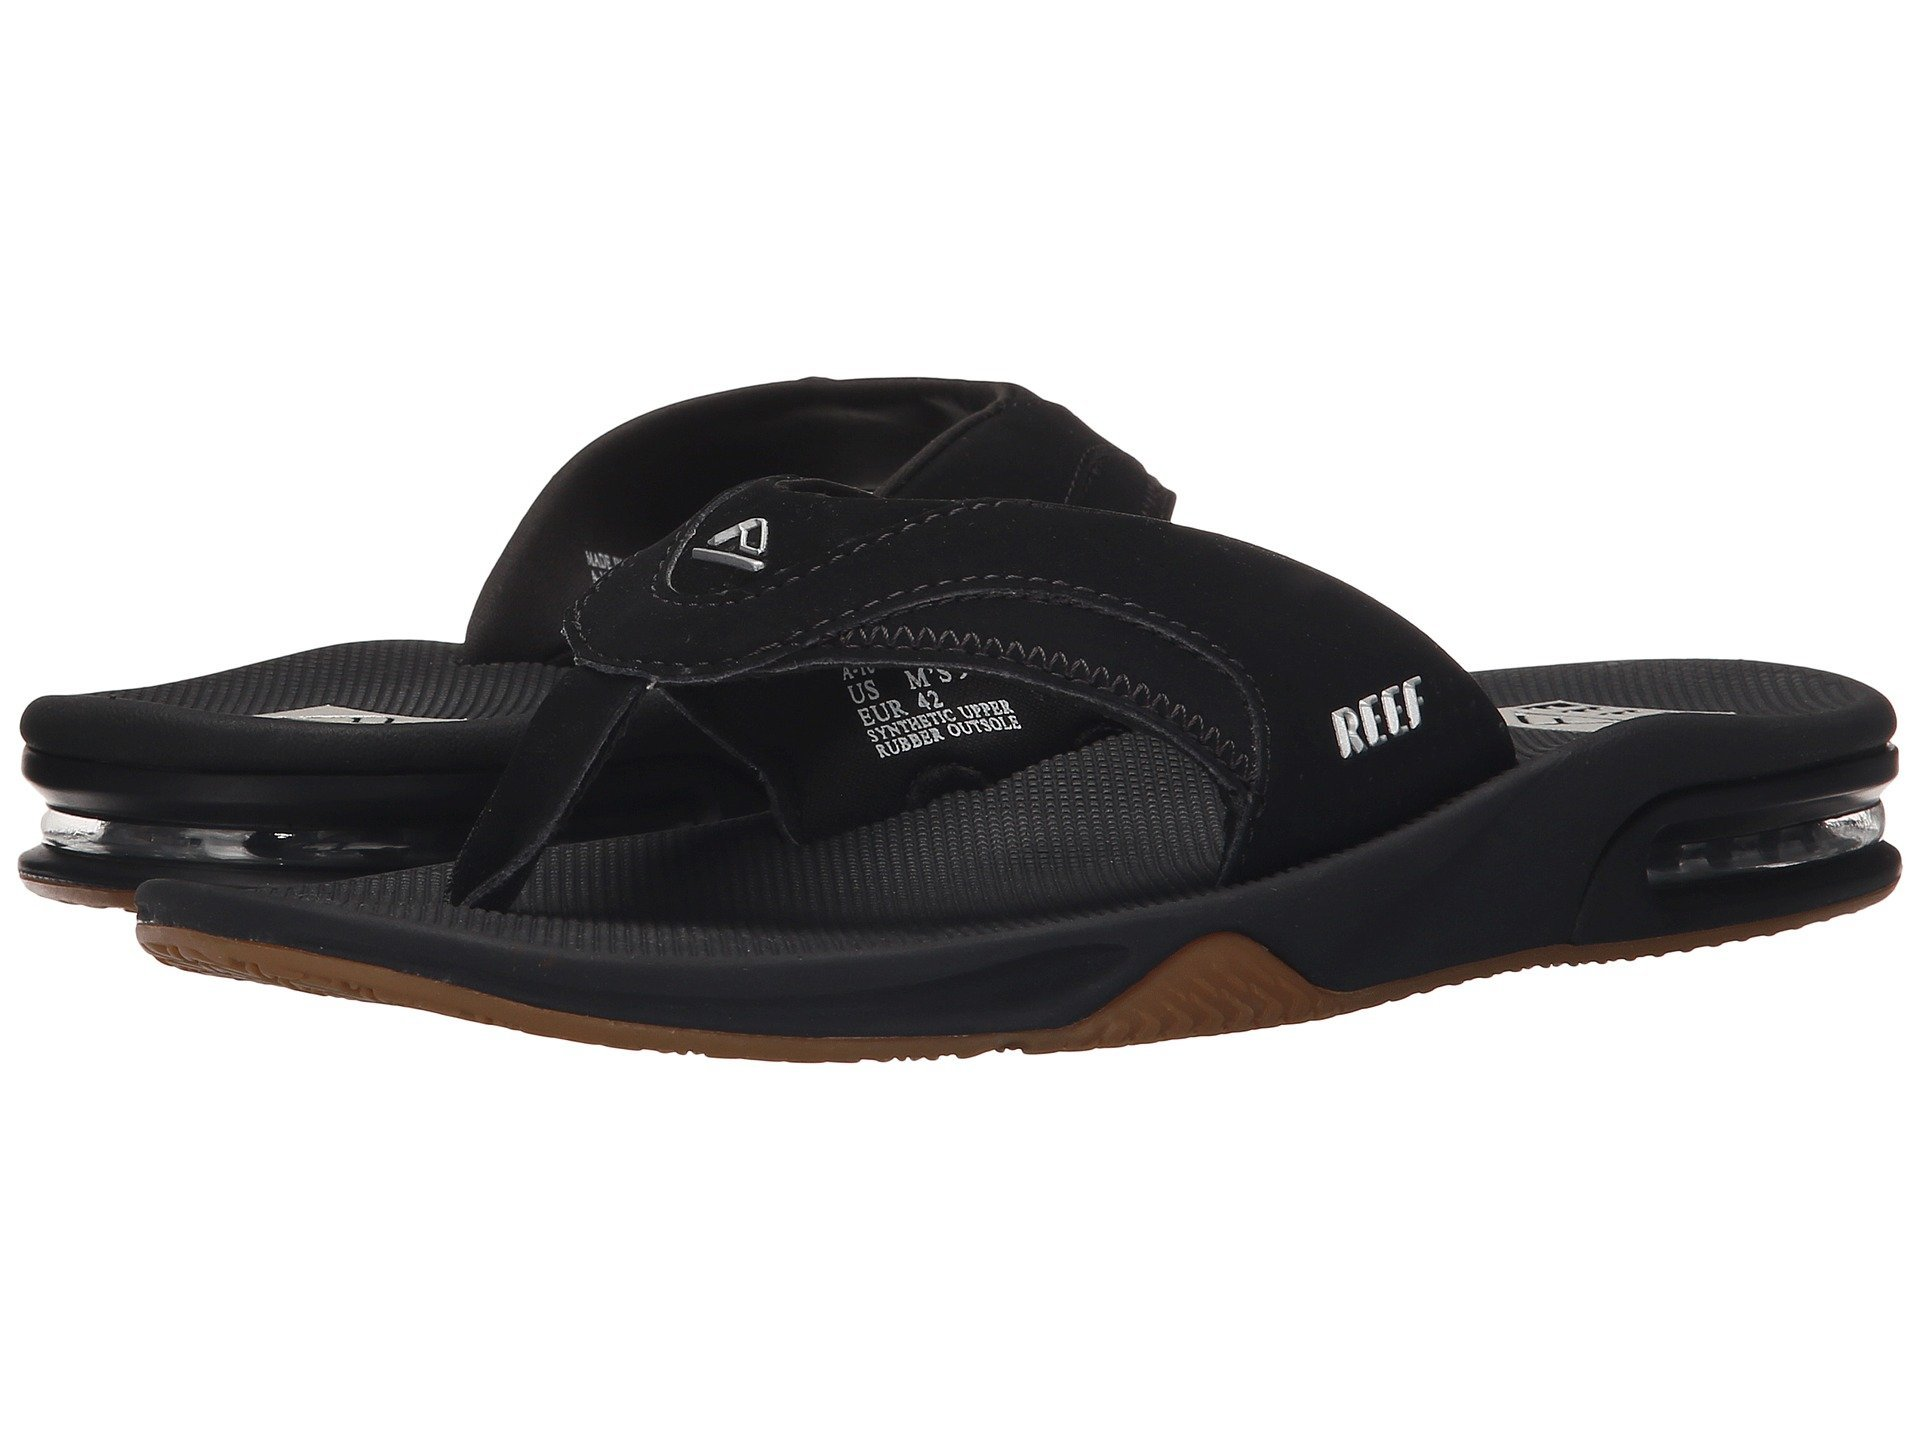 Reef Men's Fanning II Flip Flop, Black/Silver, 12 M US by Reef